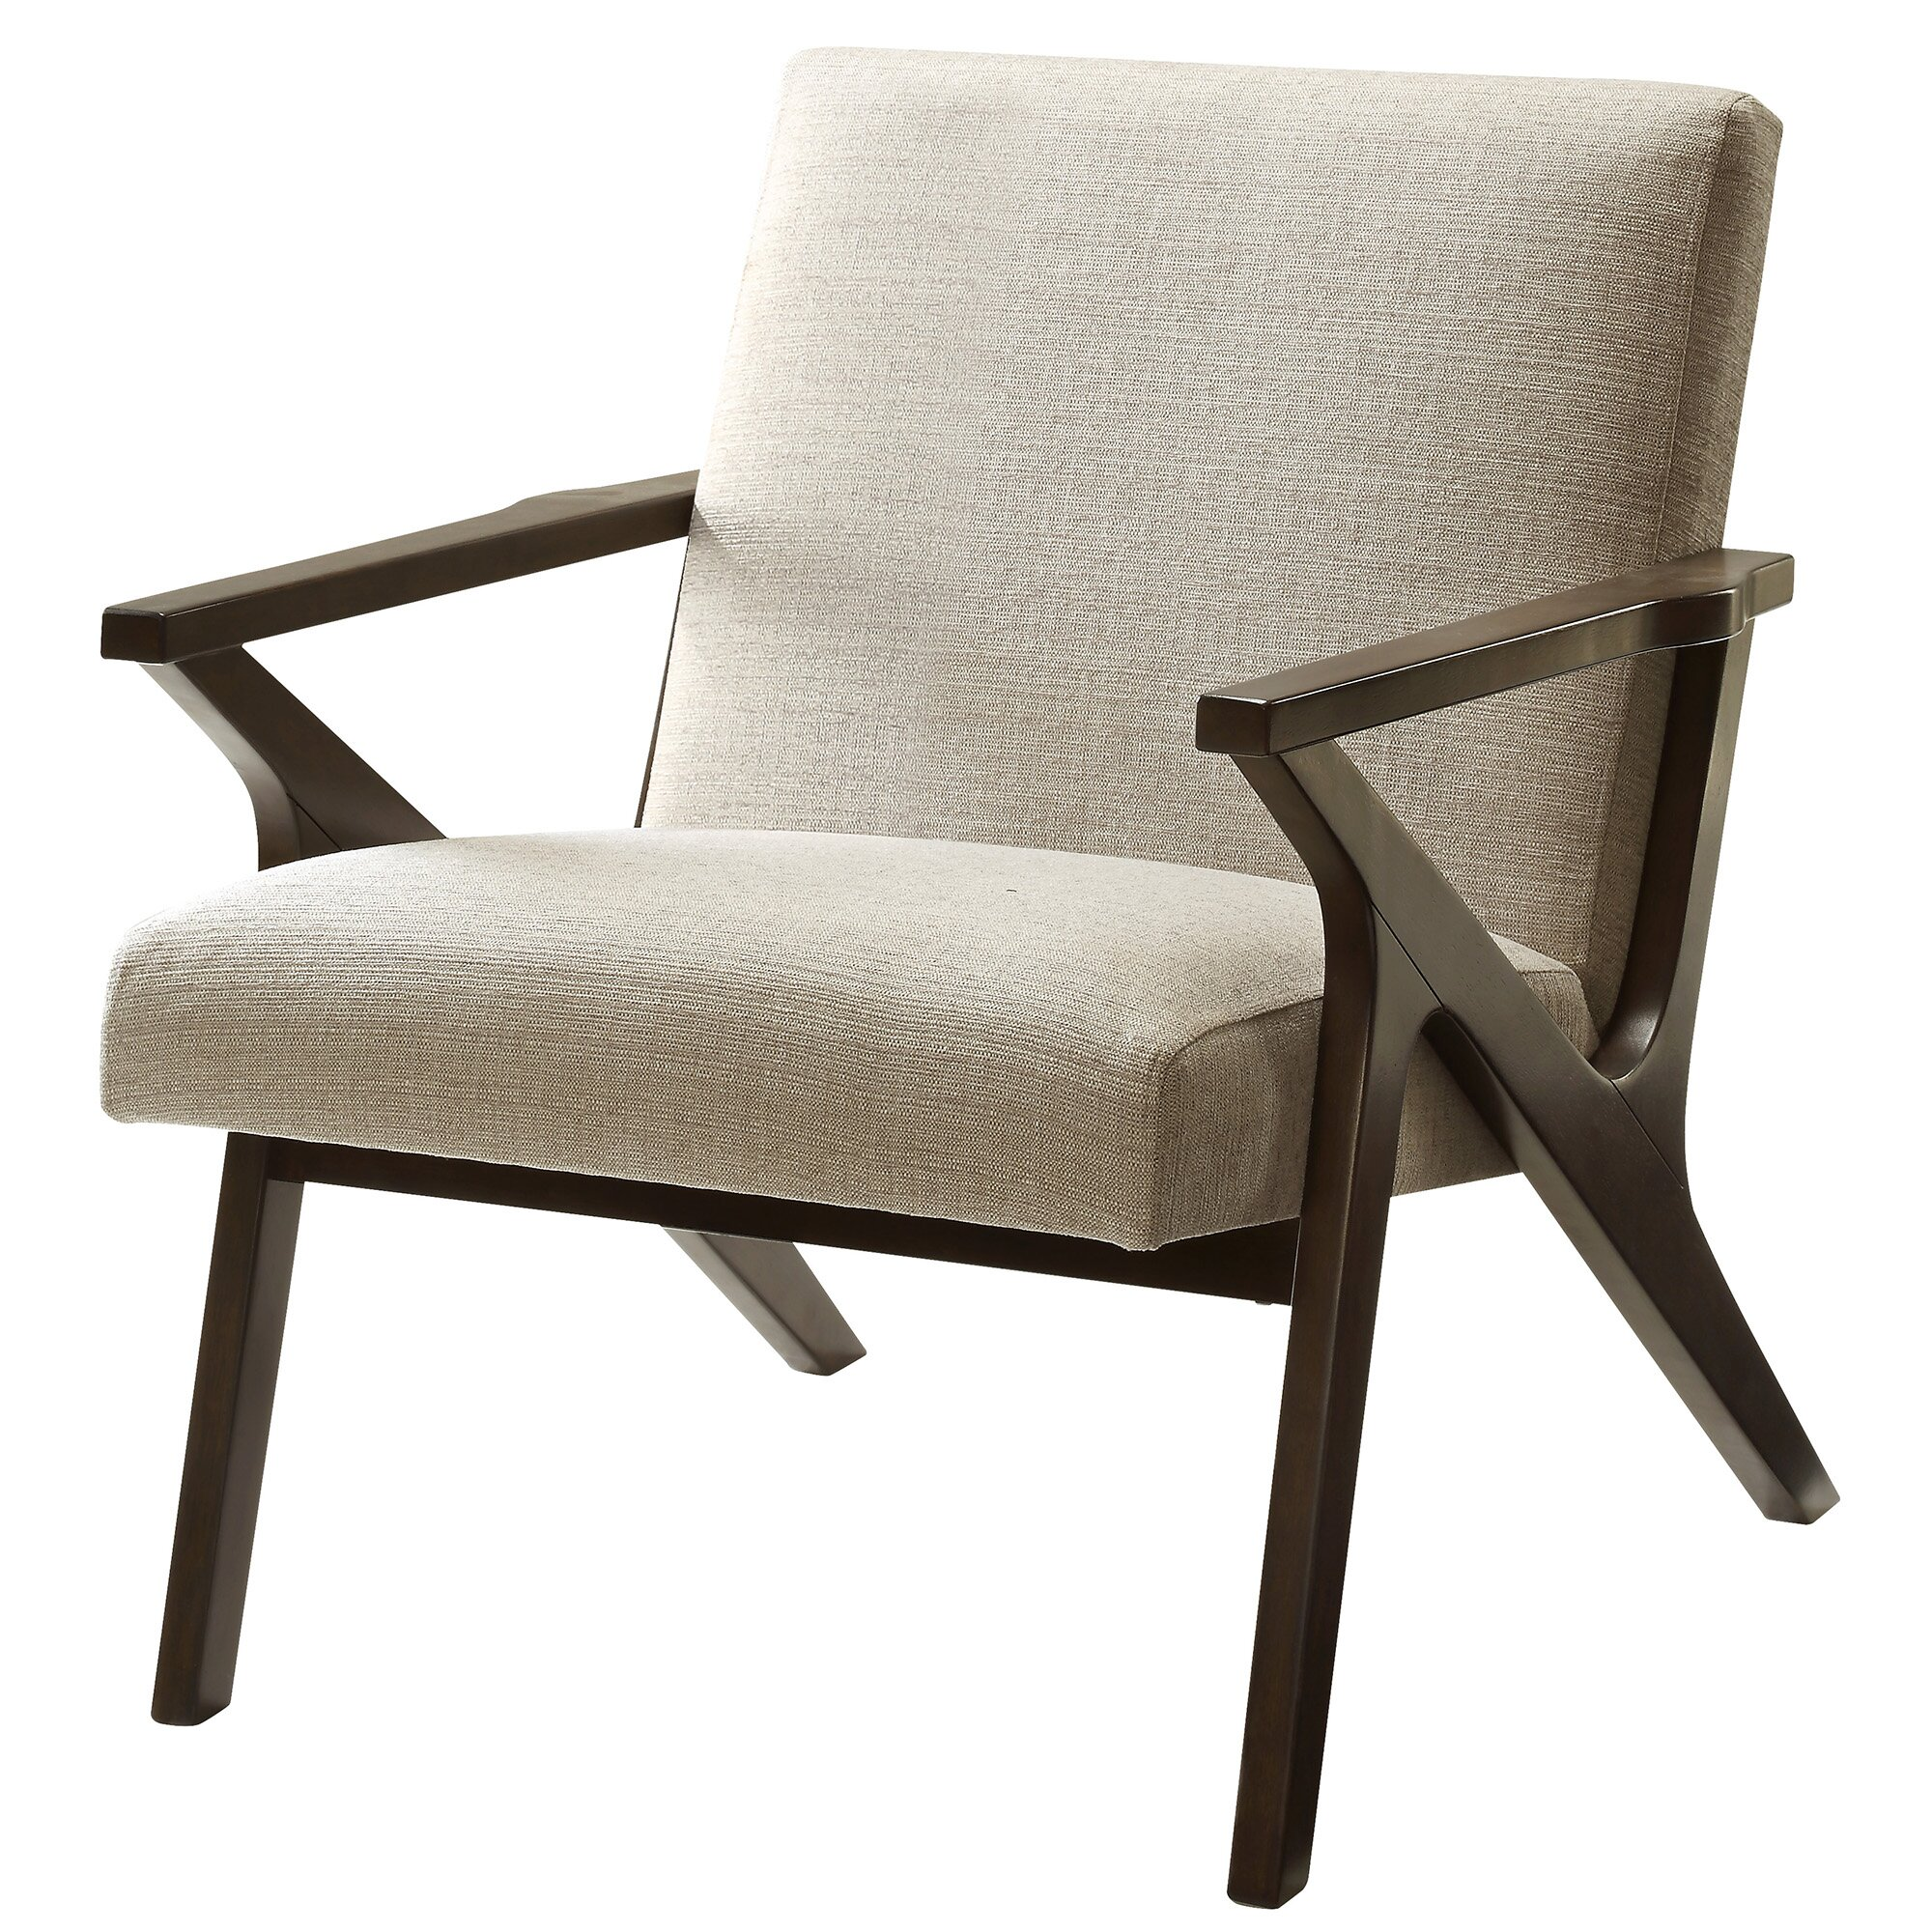 Nspire upholstered accent arm chair reviews wayfair for Contemporary armchair